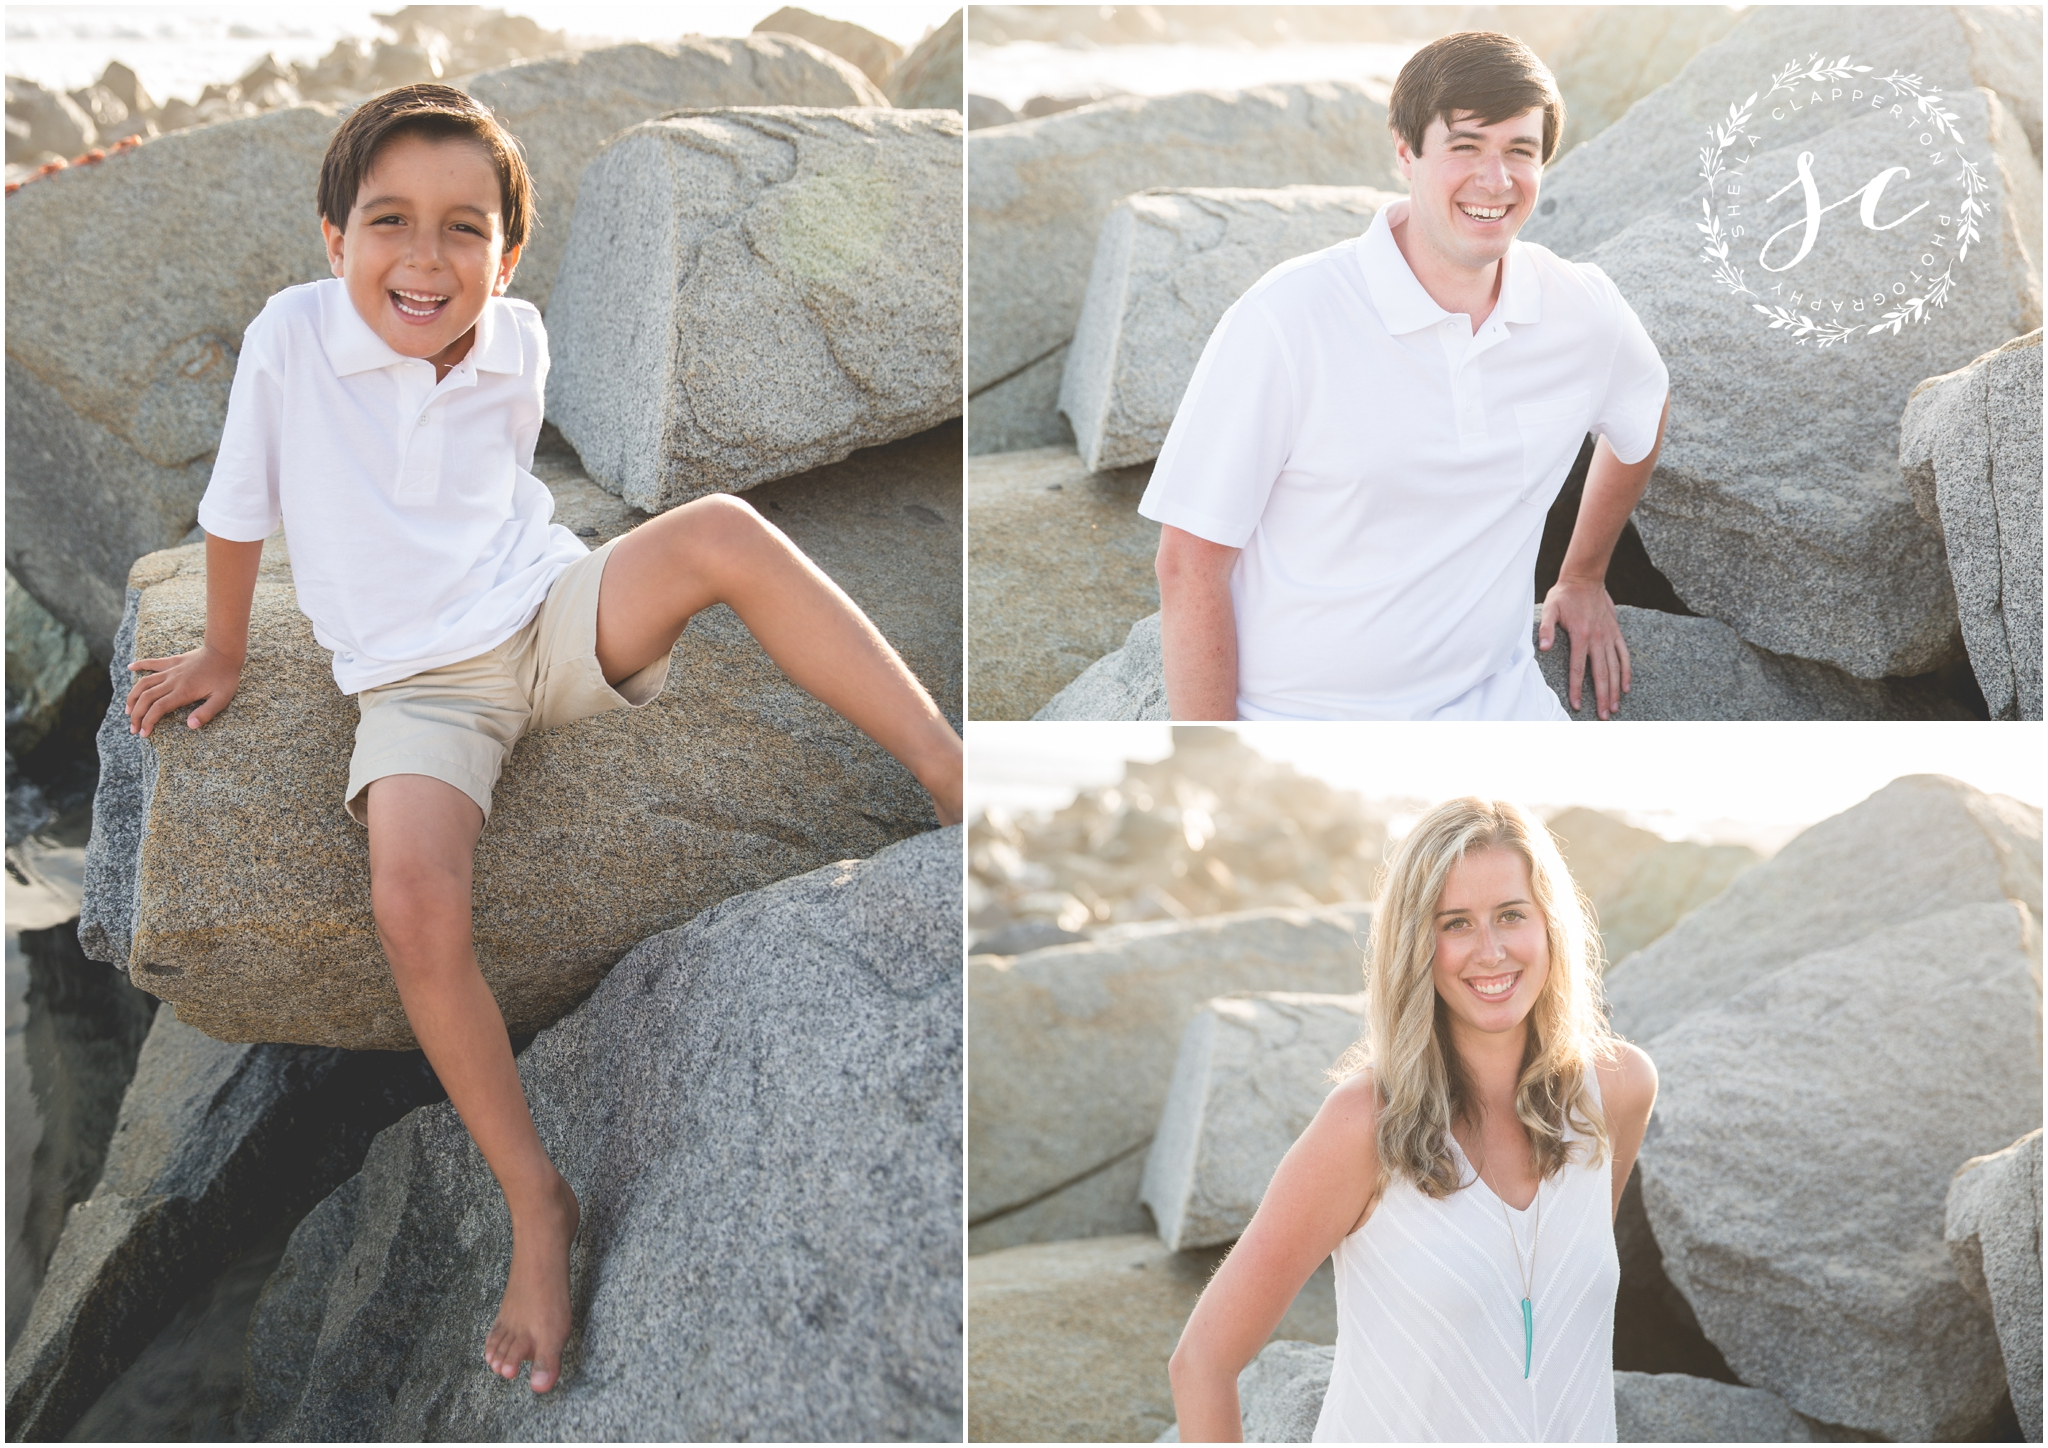 coronado photographer beach portraits